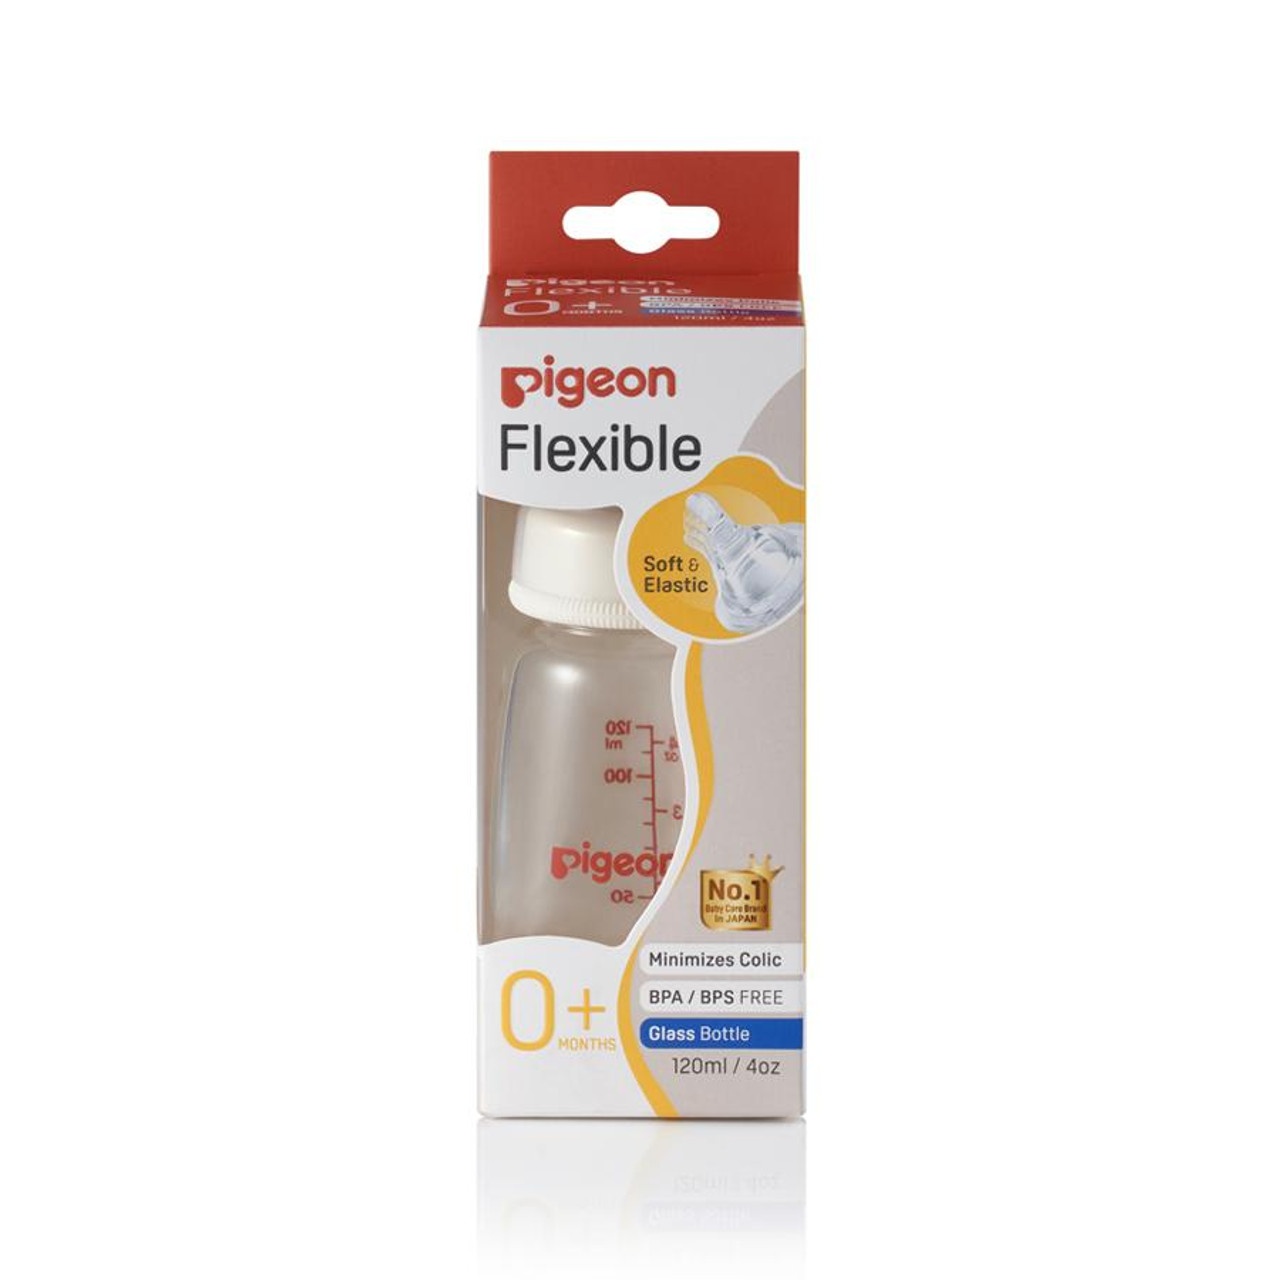 Pigeon Flexible Peristaltic Glass Slim Neck Bottle - 120ml at Baby Barn Discounts